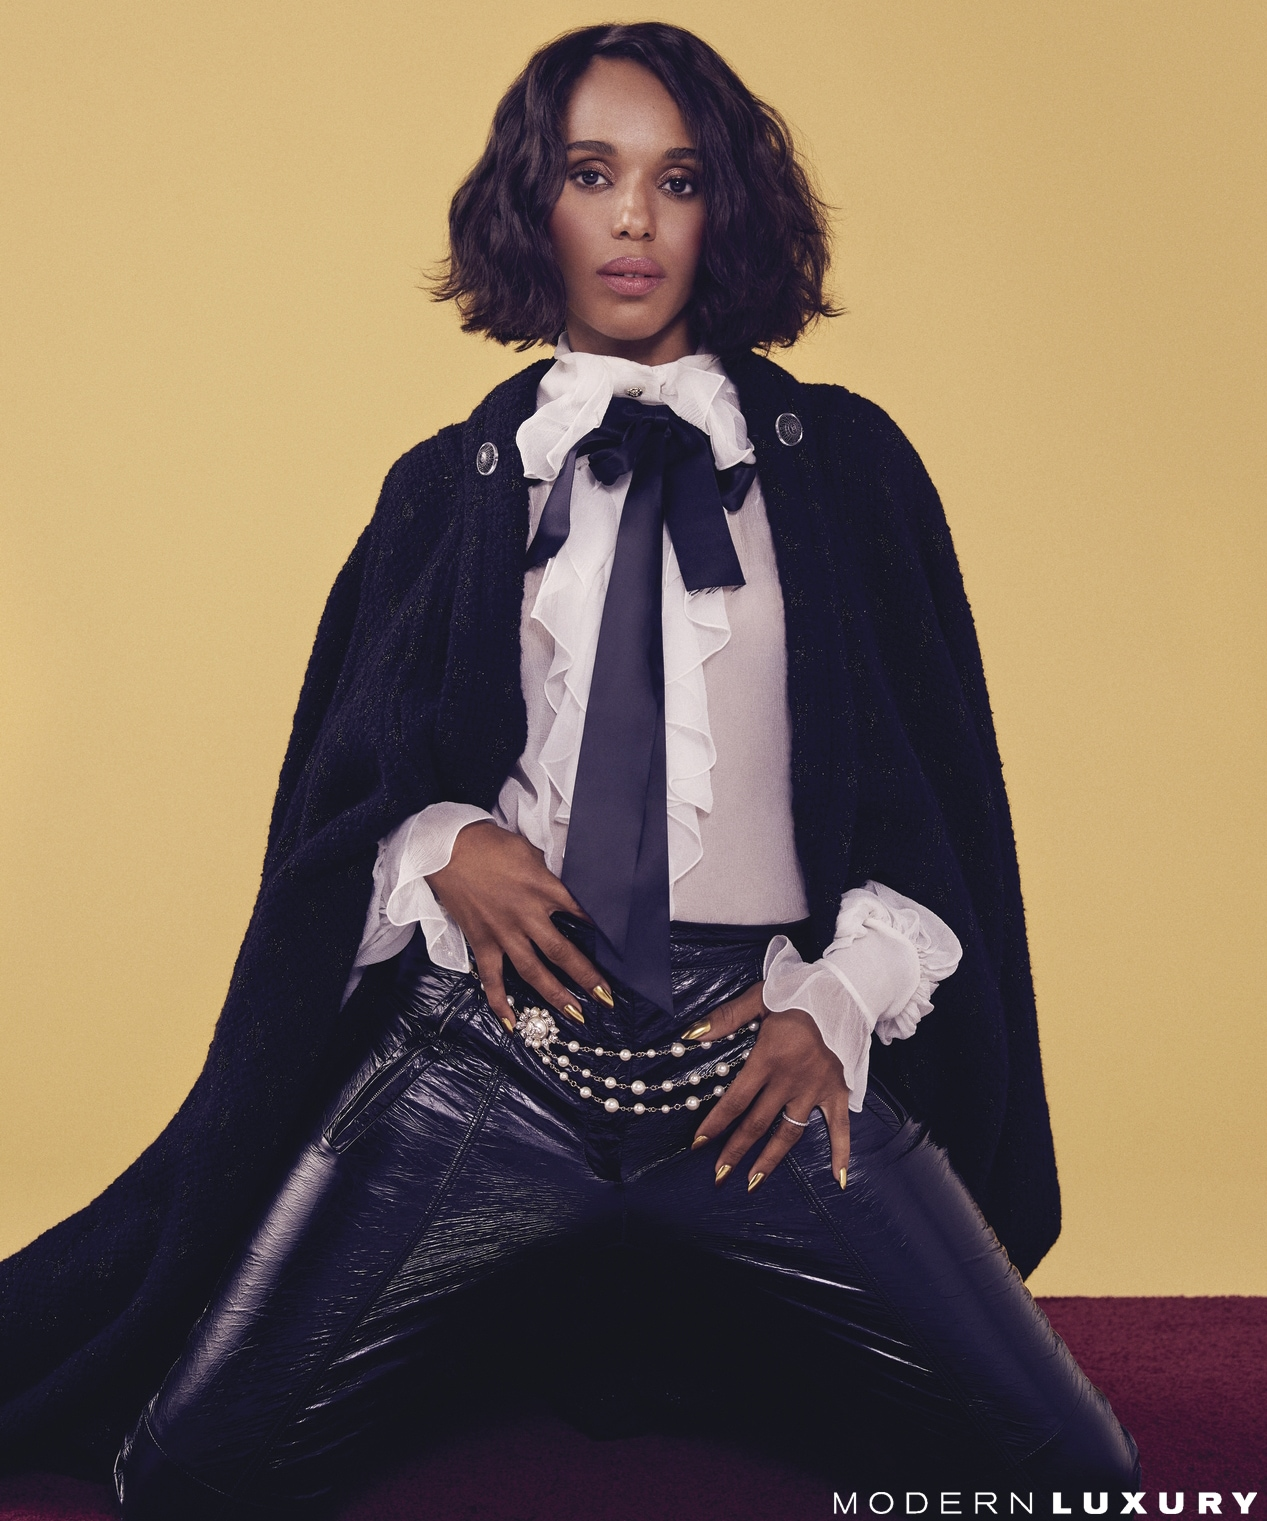 RROSALES_ML_KERRY_WASHINGTON_1114_HIGHRES(PE)_wm_byRamonaRosales.jpg